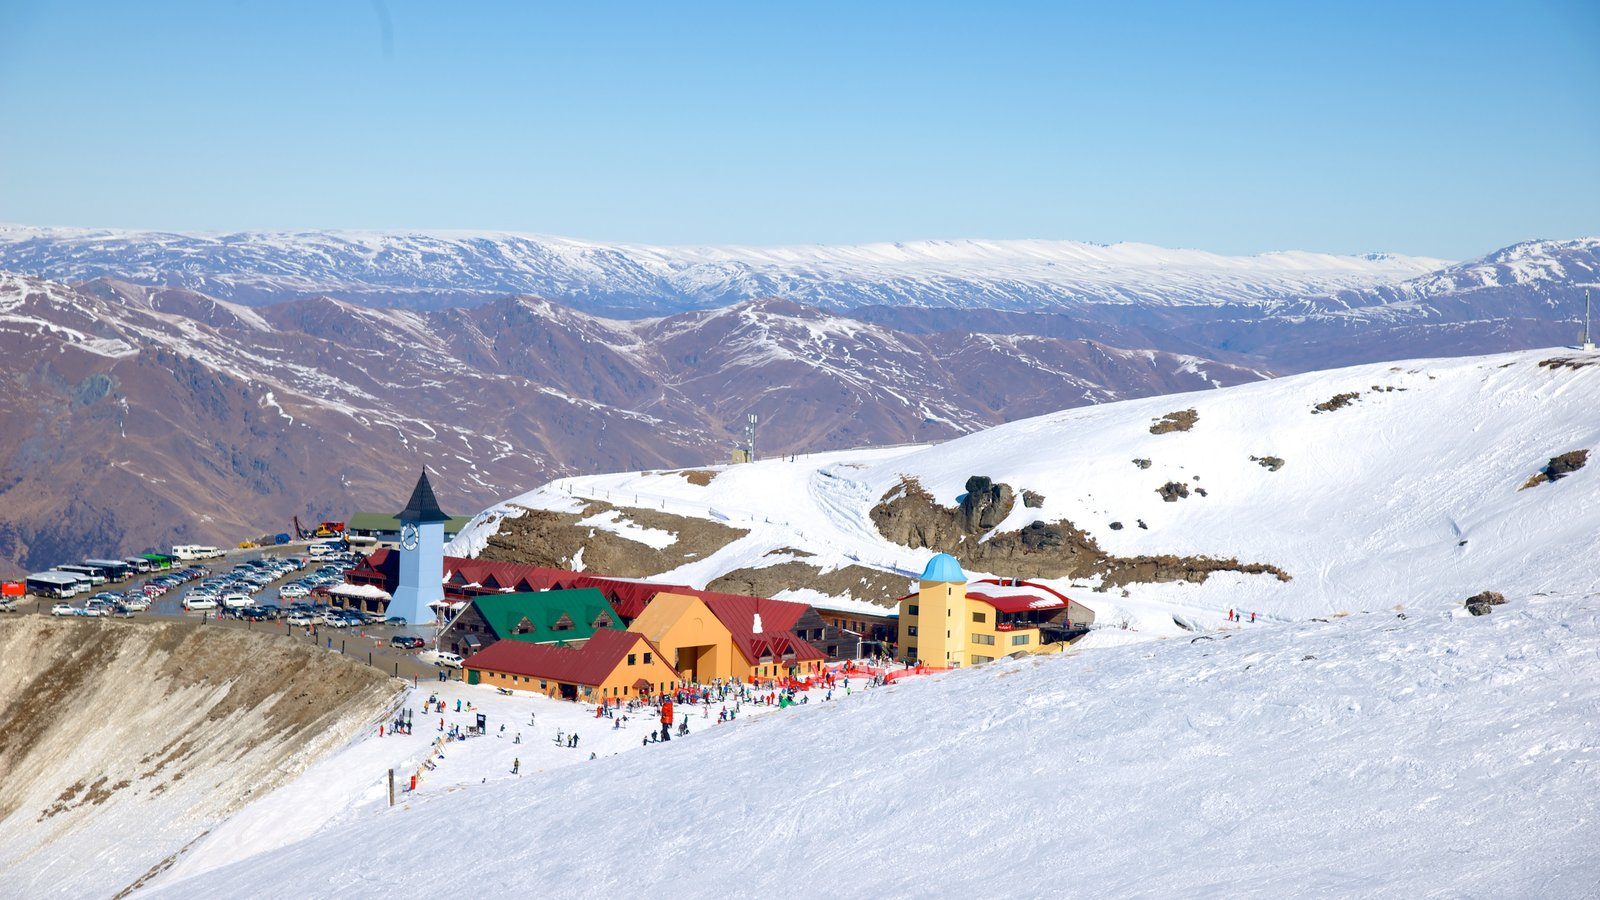 Cardrona Alpine Resort featuring landscape views and snow